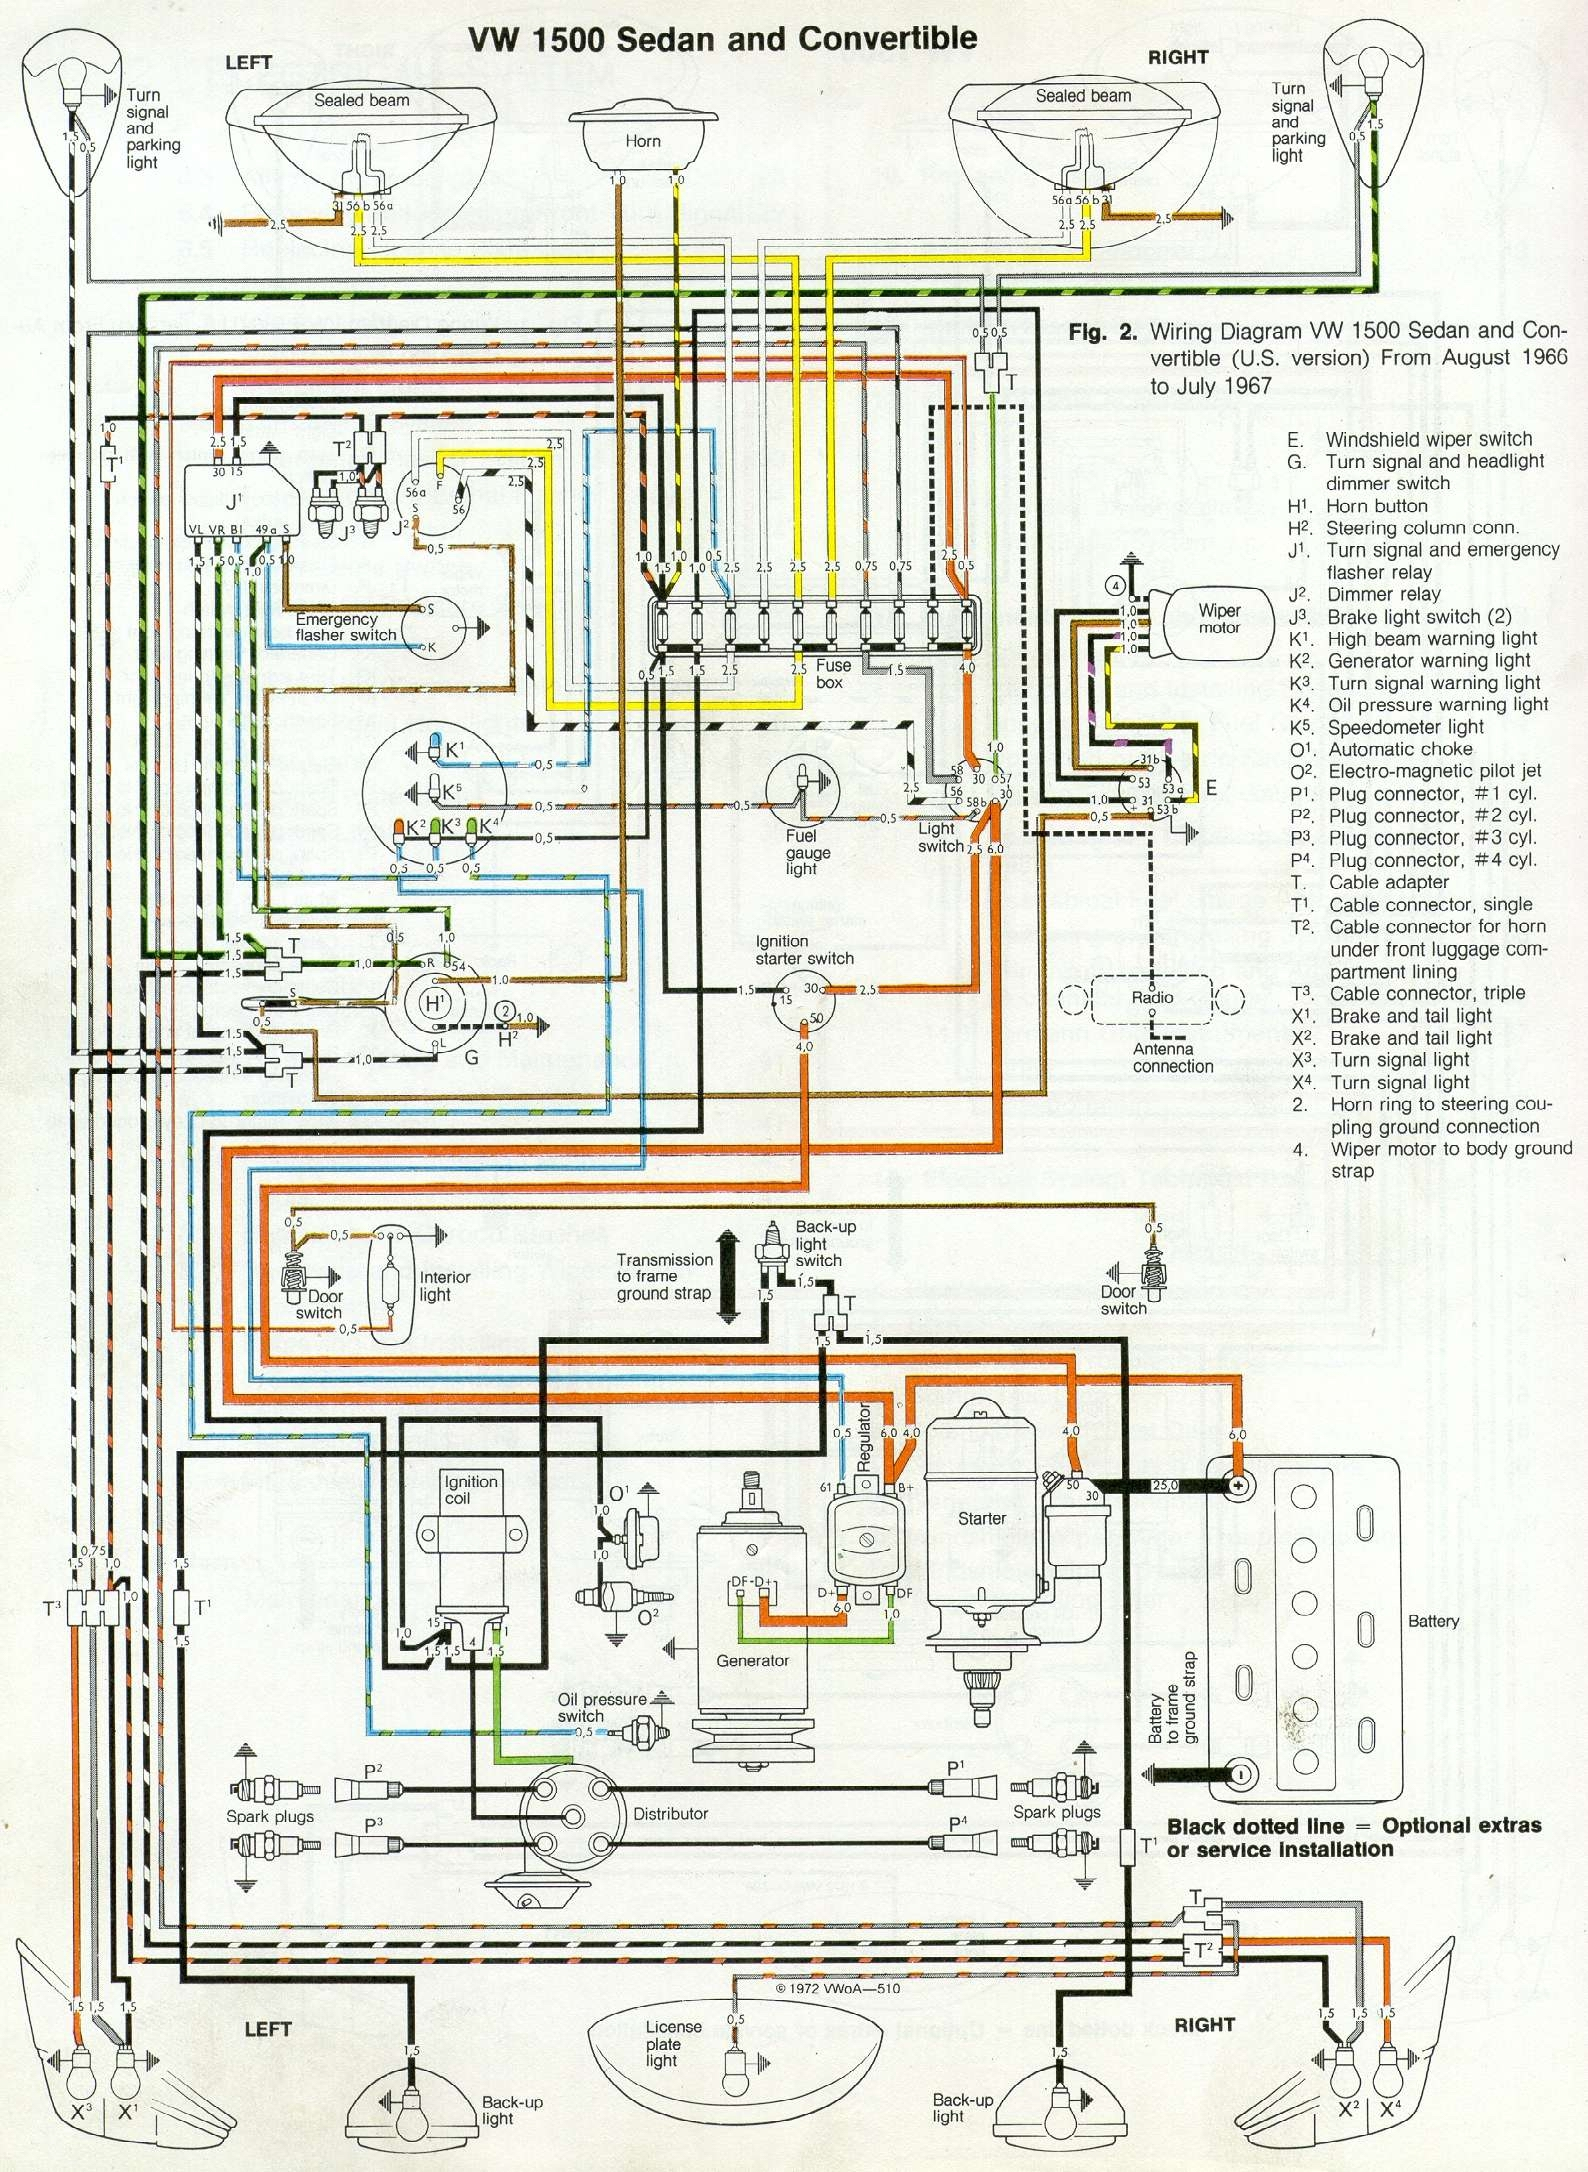 Bosch Alternator Wiring Diagram On 1965 Porsche Wiring Diagram